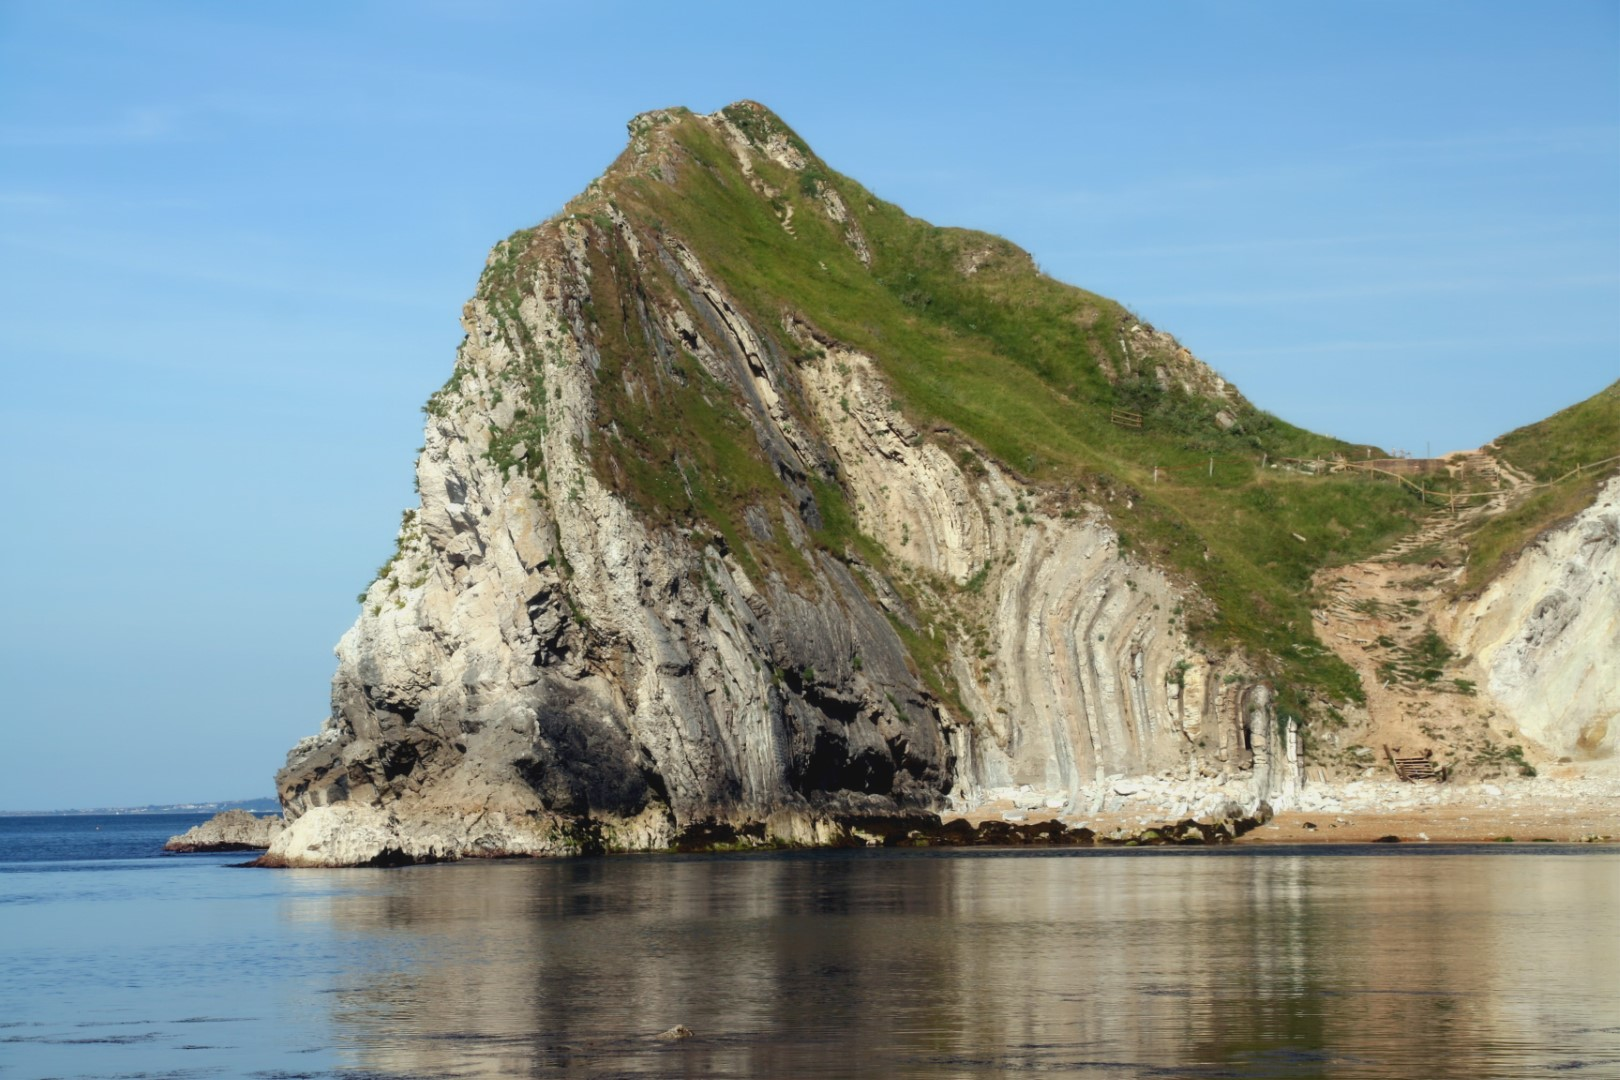 The other side of Durdle Door in close up with an amazing rockface.